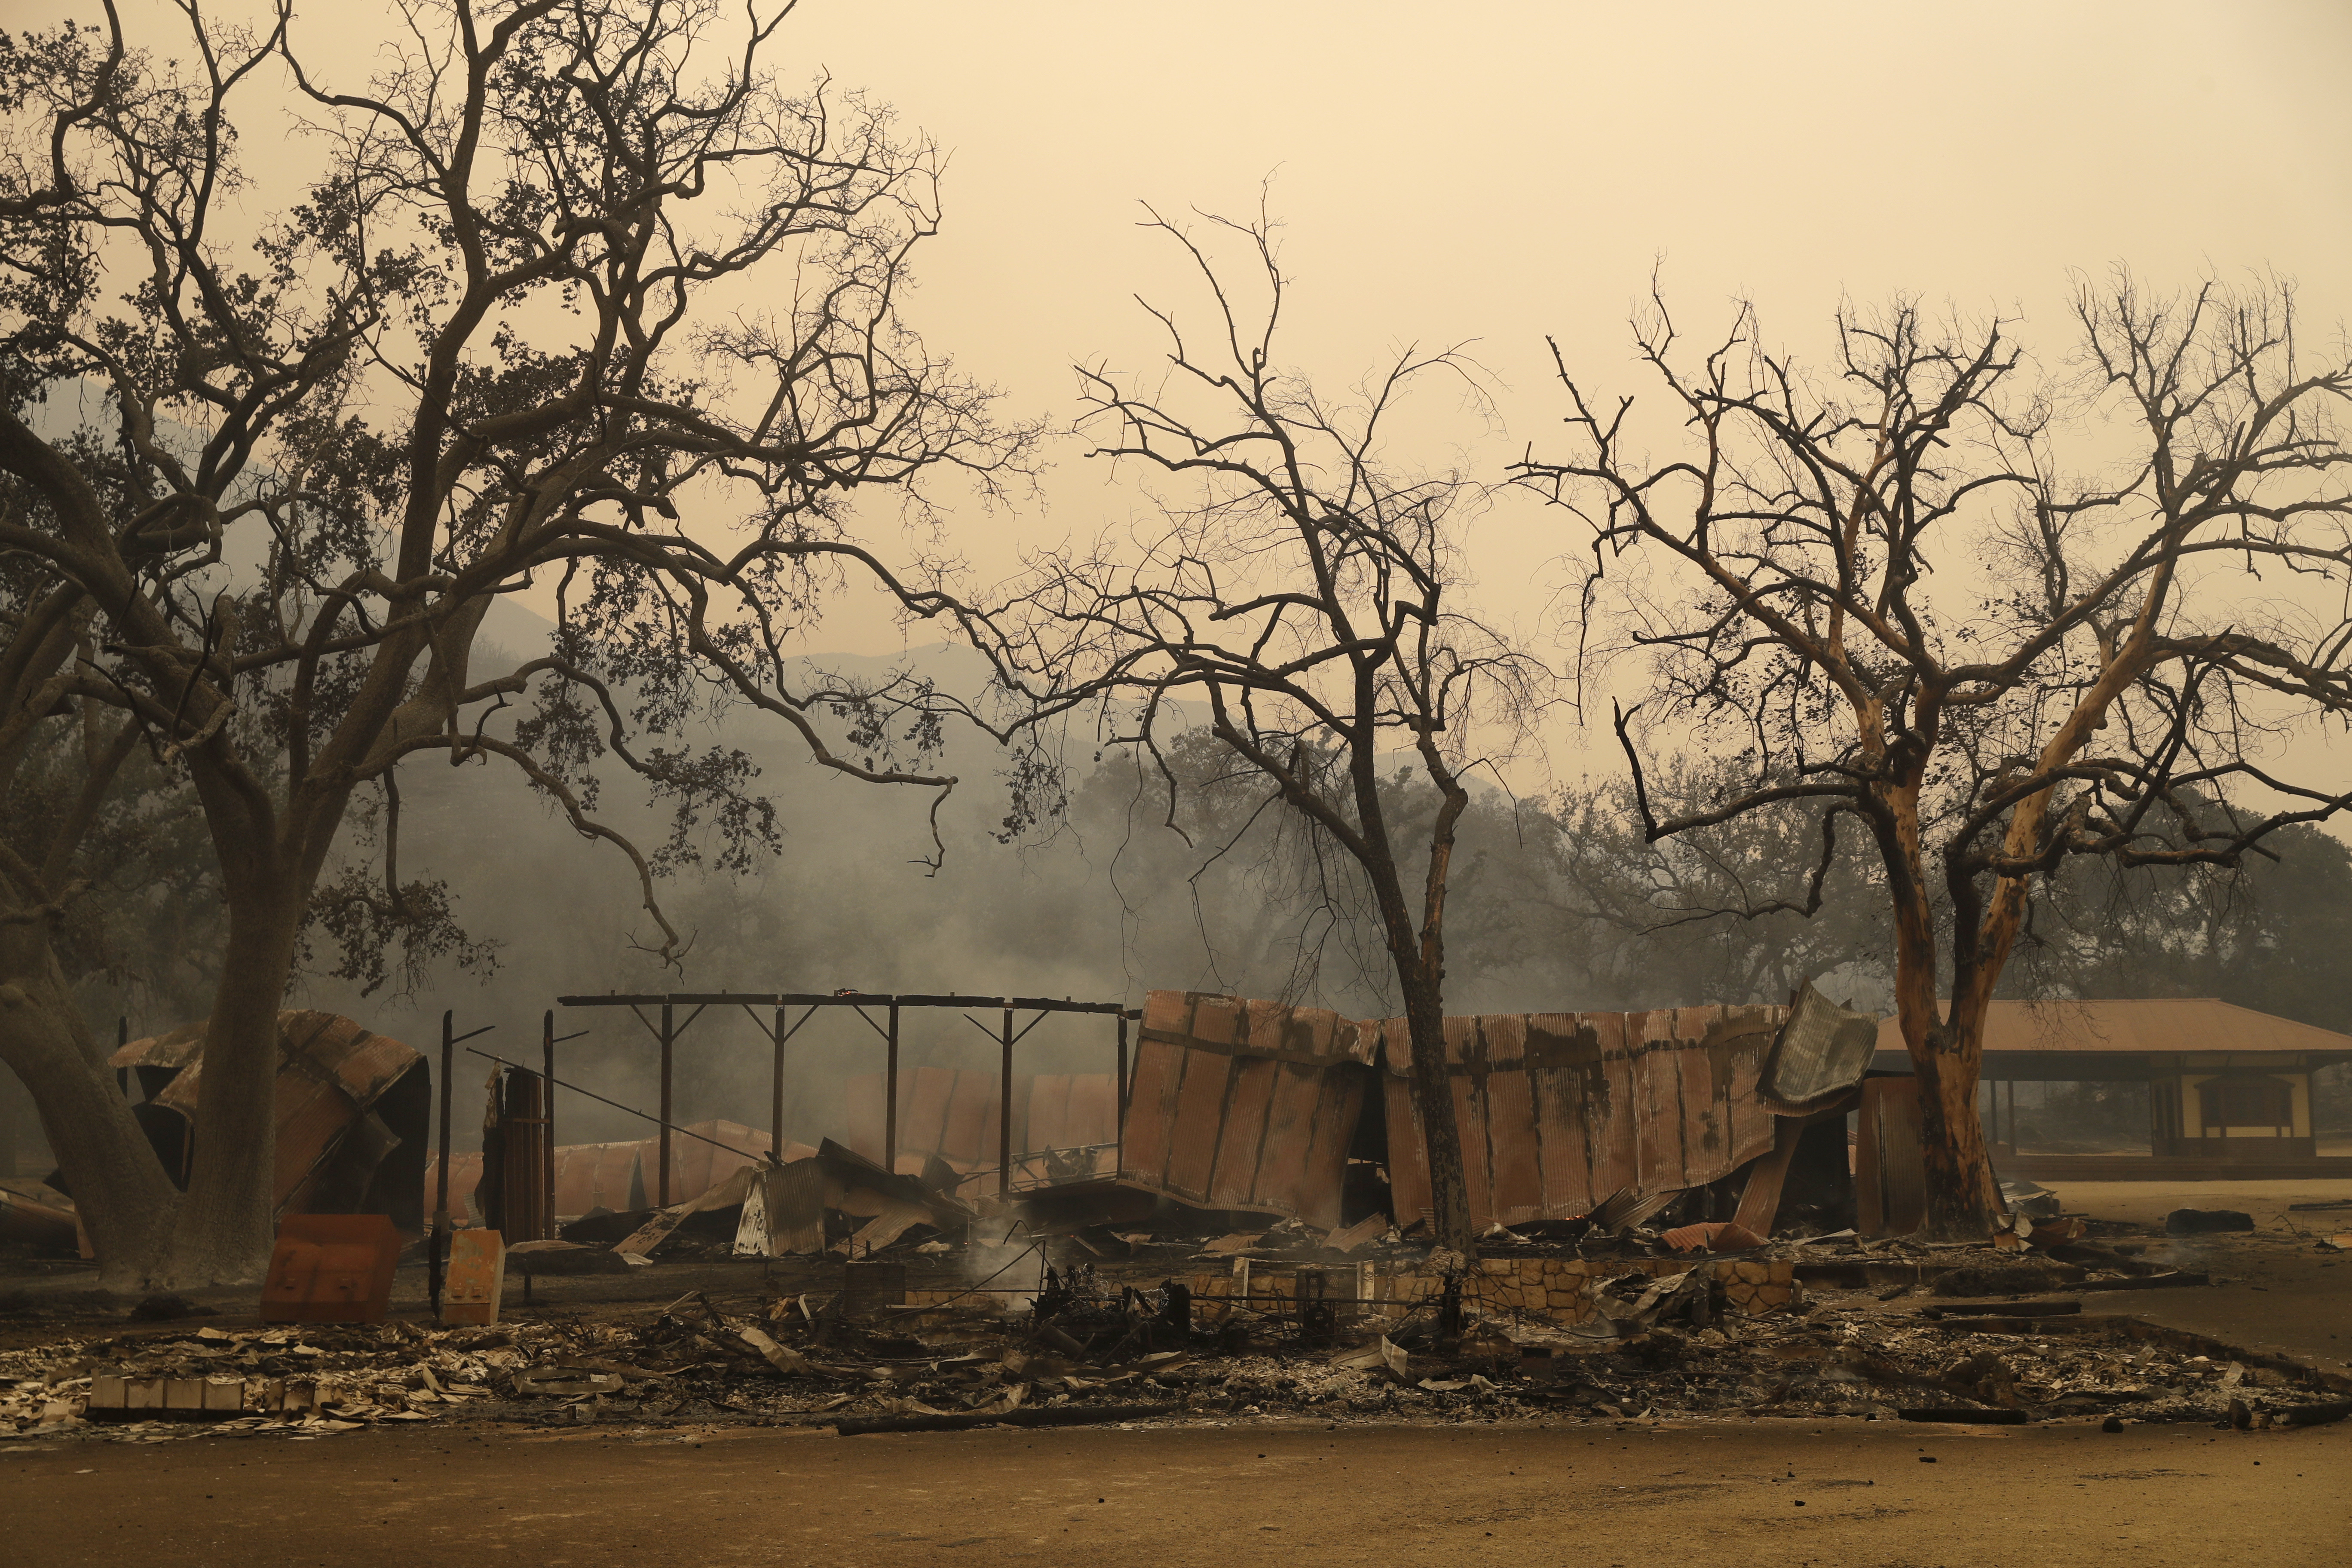 Paramount Ranch, where a number of Hollywood westerns have been filmed, is seen after it was decimated by a wildfire Friday, Nov. 9, 2018, in Agoura Hills, Calif. AP Photo